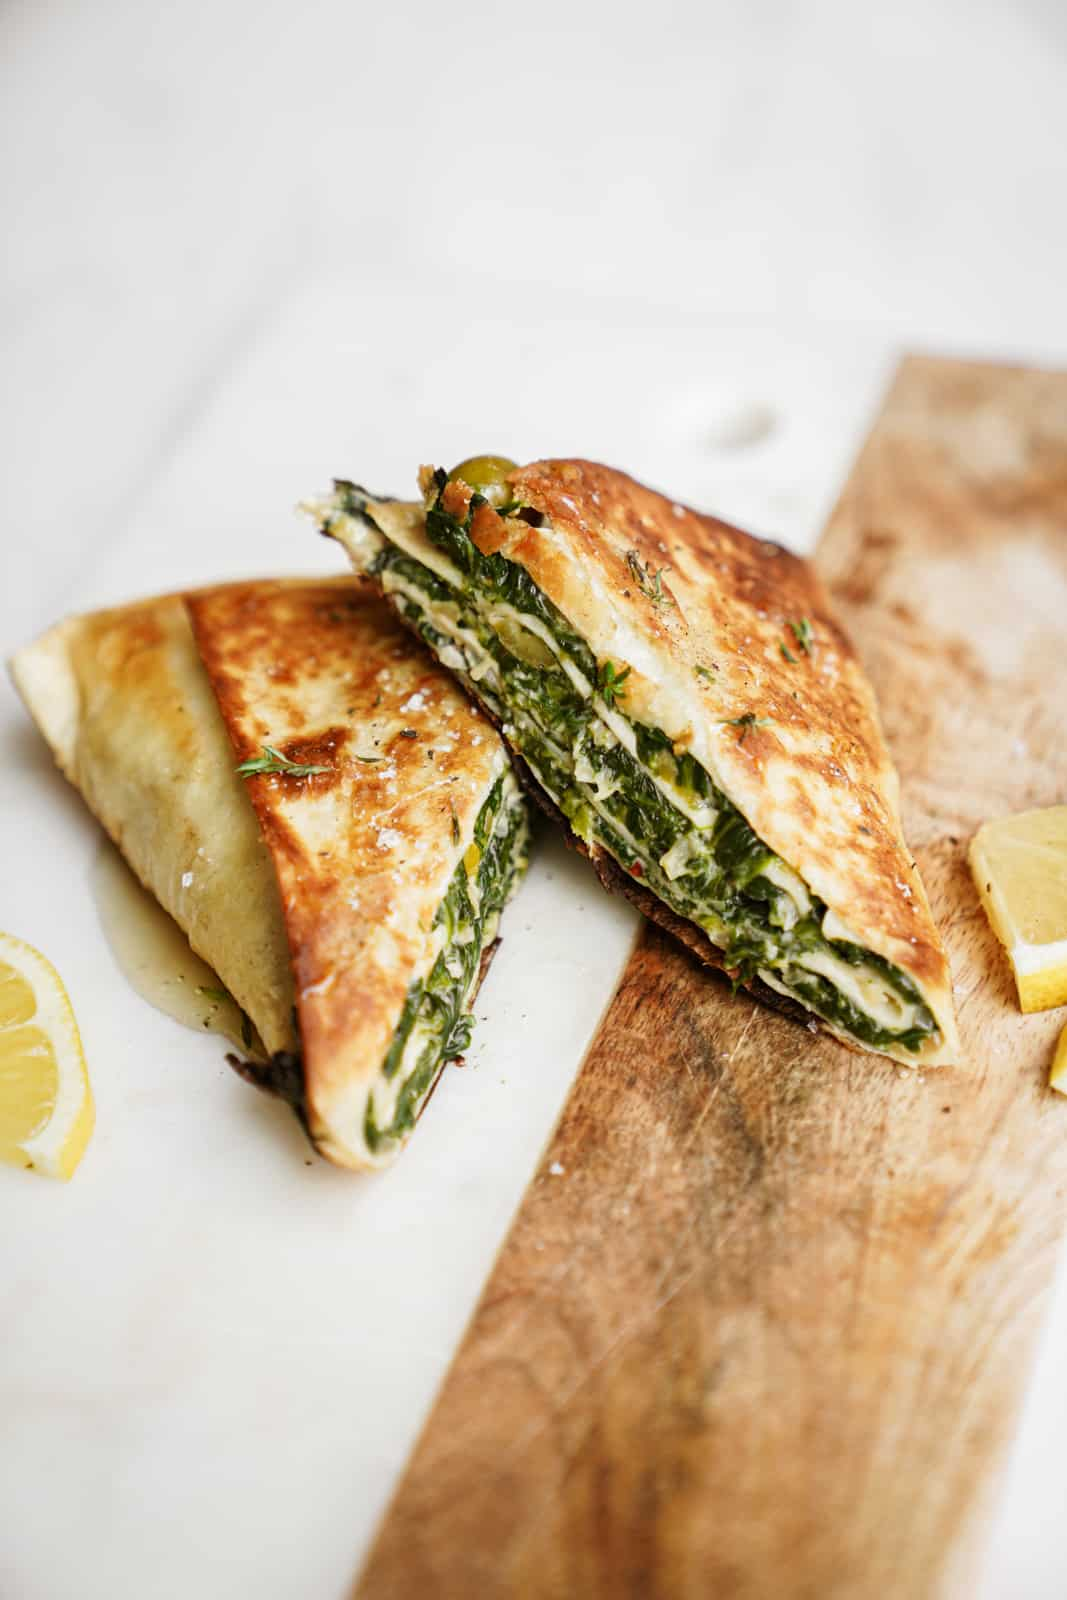 Trendy spinach wrap made greek-style cut into triangles on countertop.